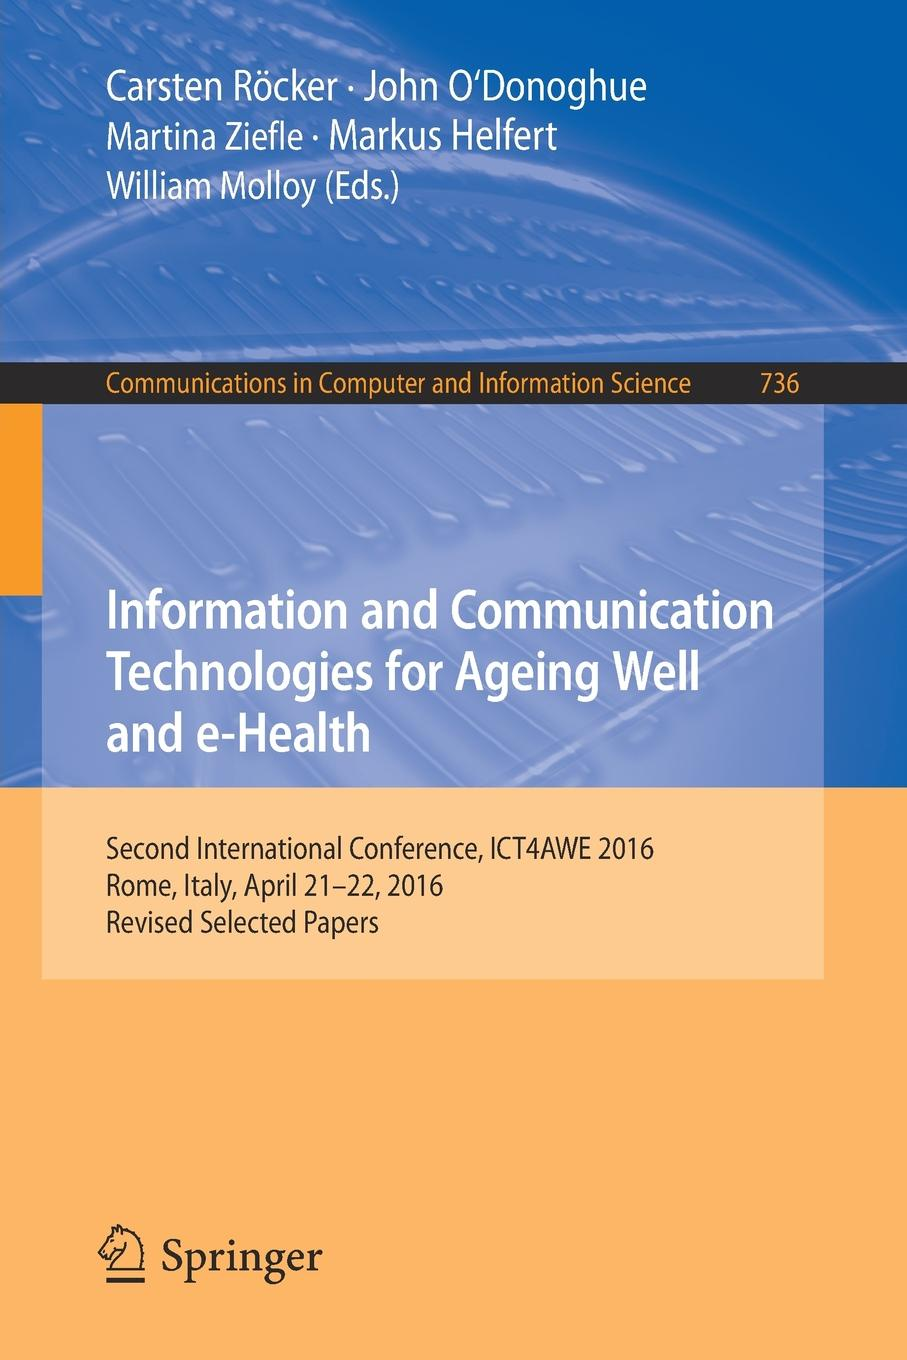 Information and Communication Technologies for Ageing Well and e-Health. Second International Conference, ICT4AWE 2016, Rome, Italy, April 21-22, 2016, Revised Selected Papers cross national information and communication technology policies and practices in education revised second edition pb